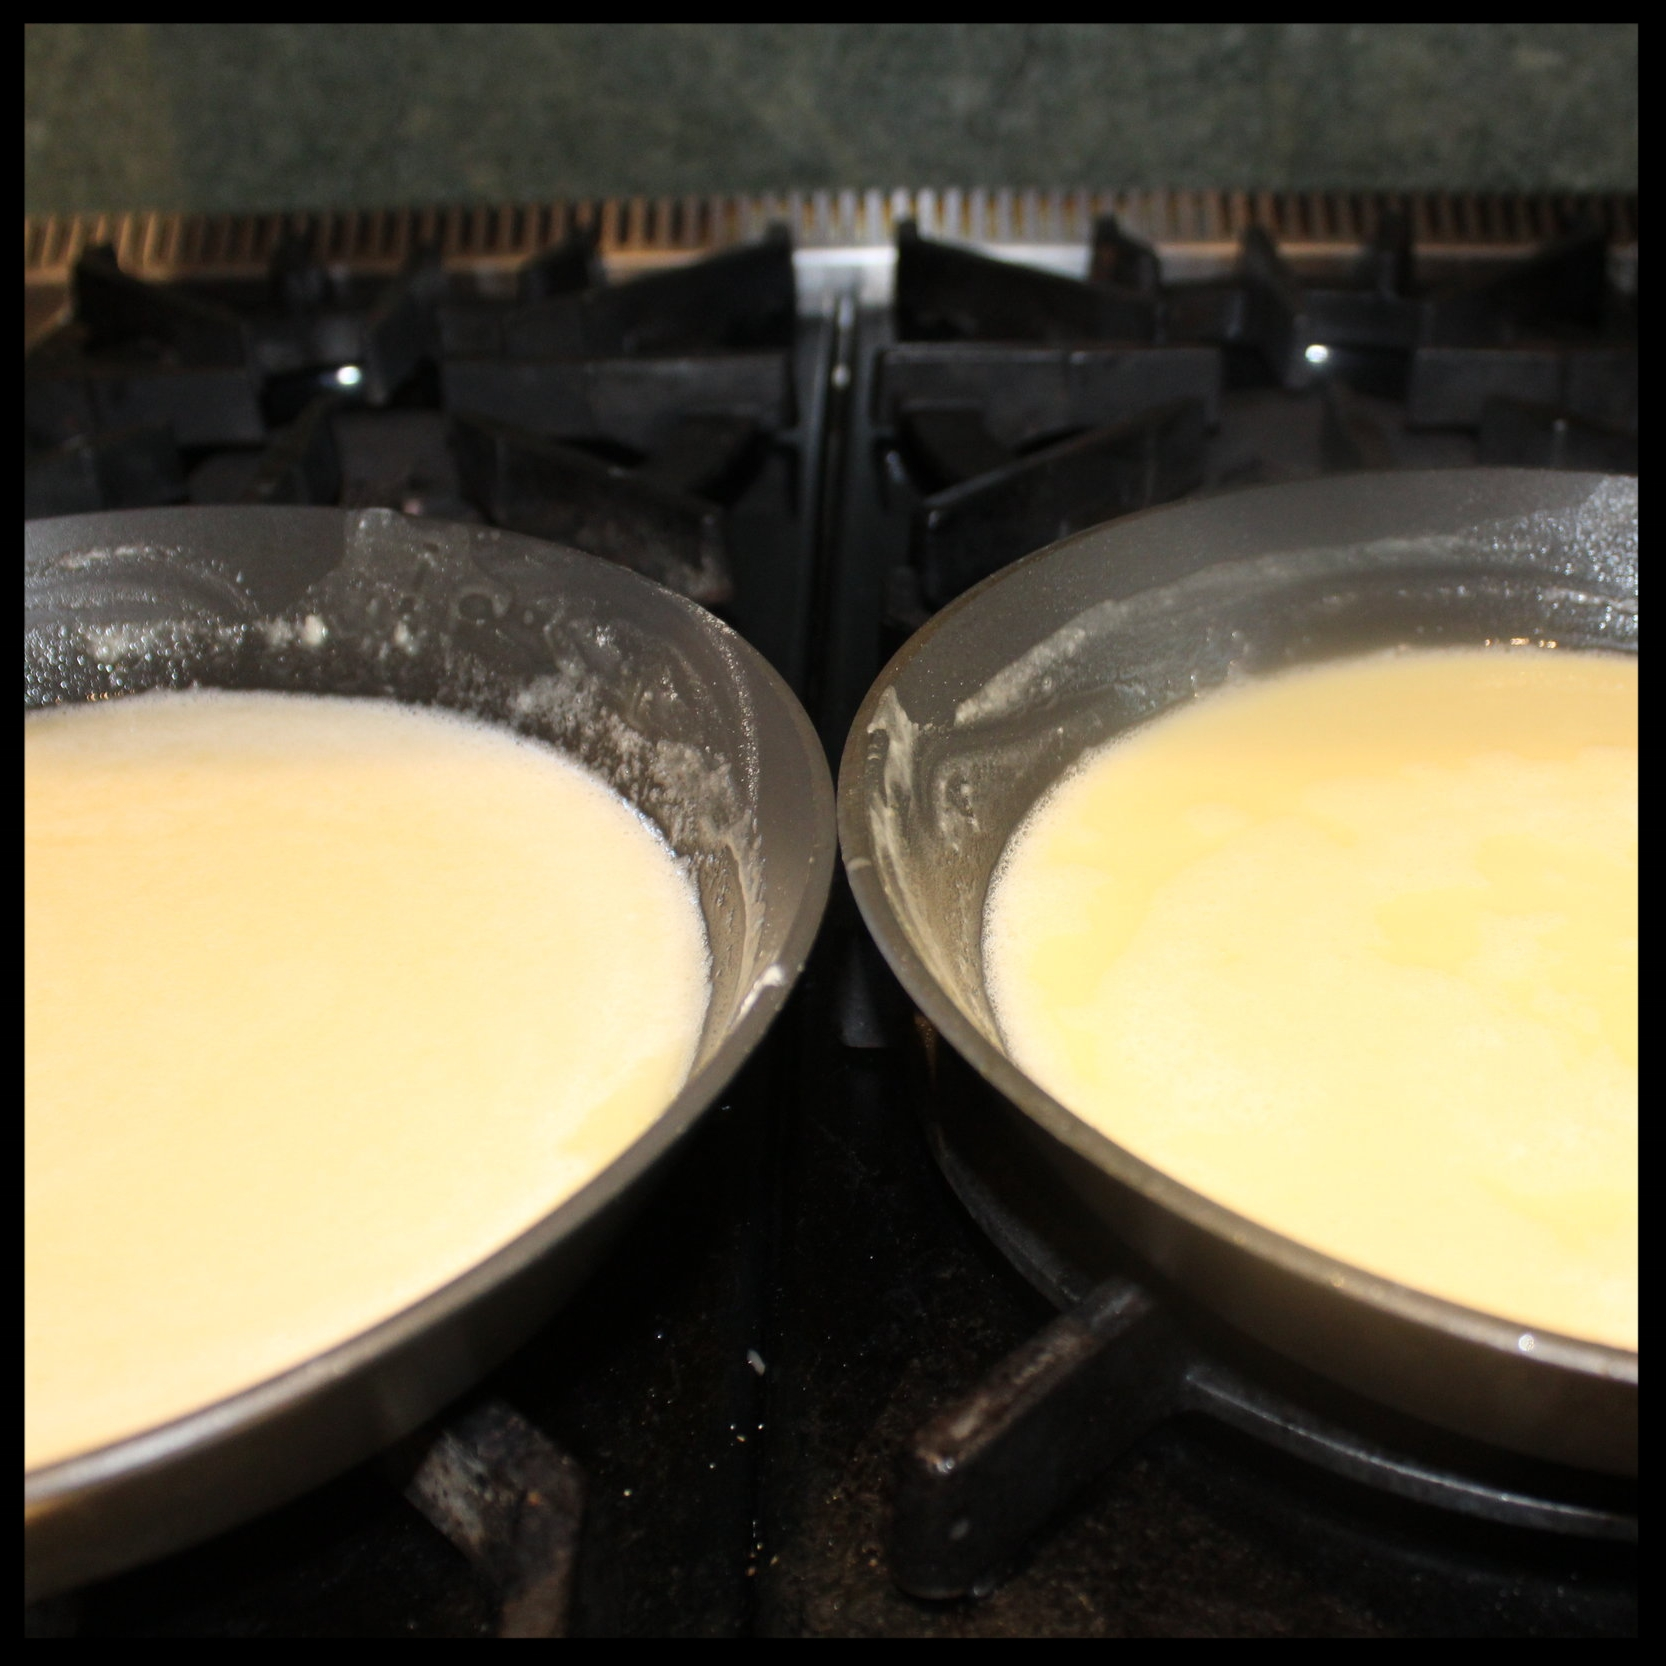 """15 minutes:   The rouxs are equal in color. At this point, they are called """"white"""" roux for obvious reasons. You could use roux at this point to thicken a white sauce, milk gravy or cheese sauce or a light seafood dish or chowder."""